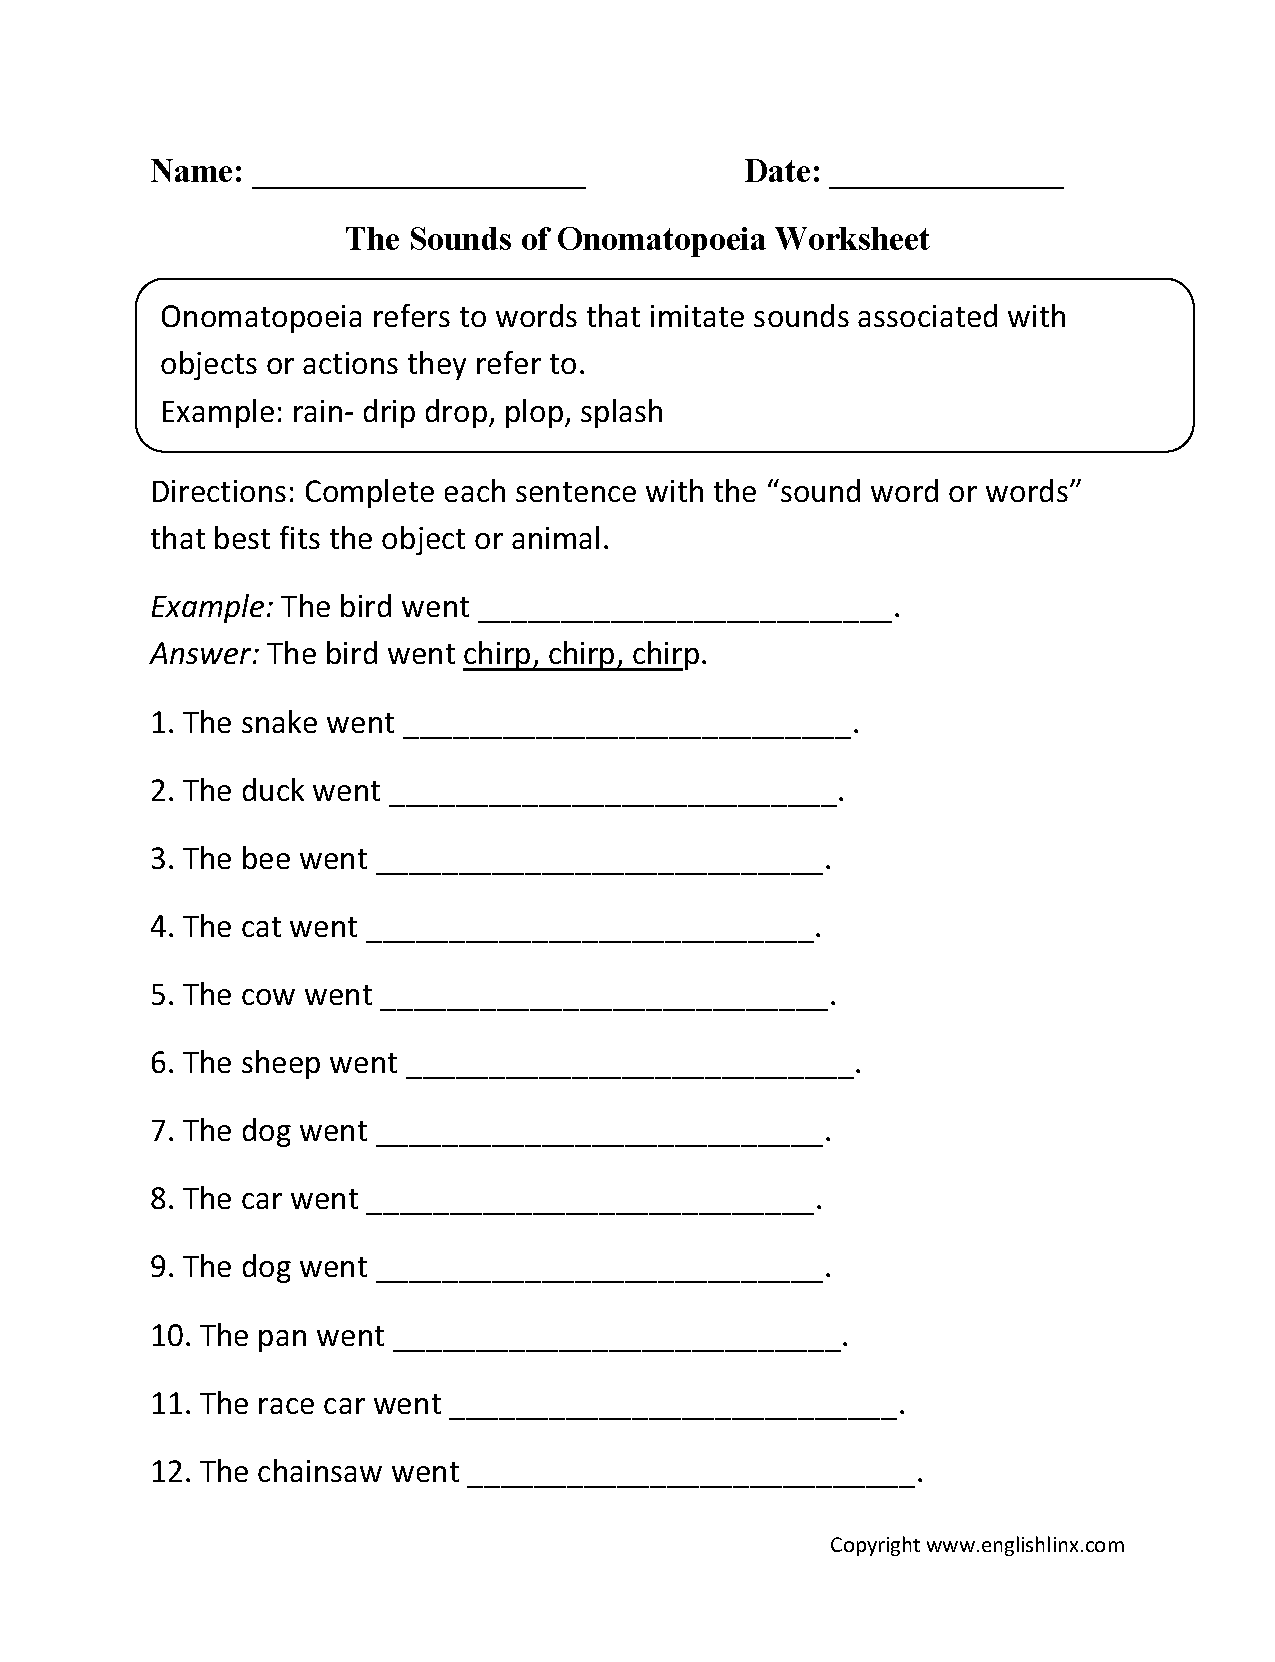 Sounds Of Onomatopoeia Worksheet